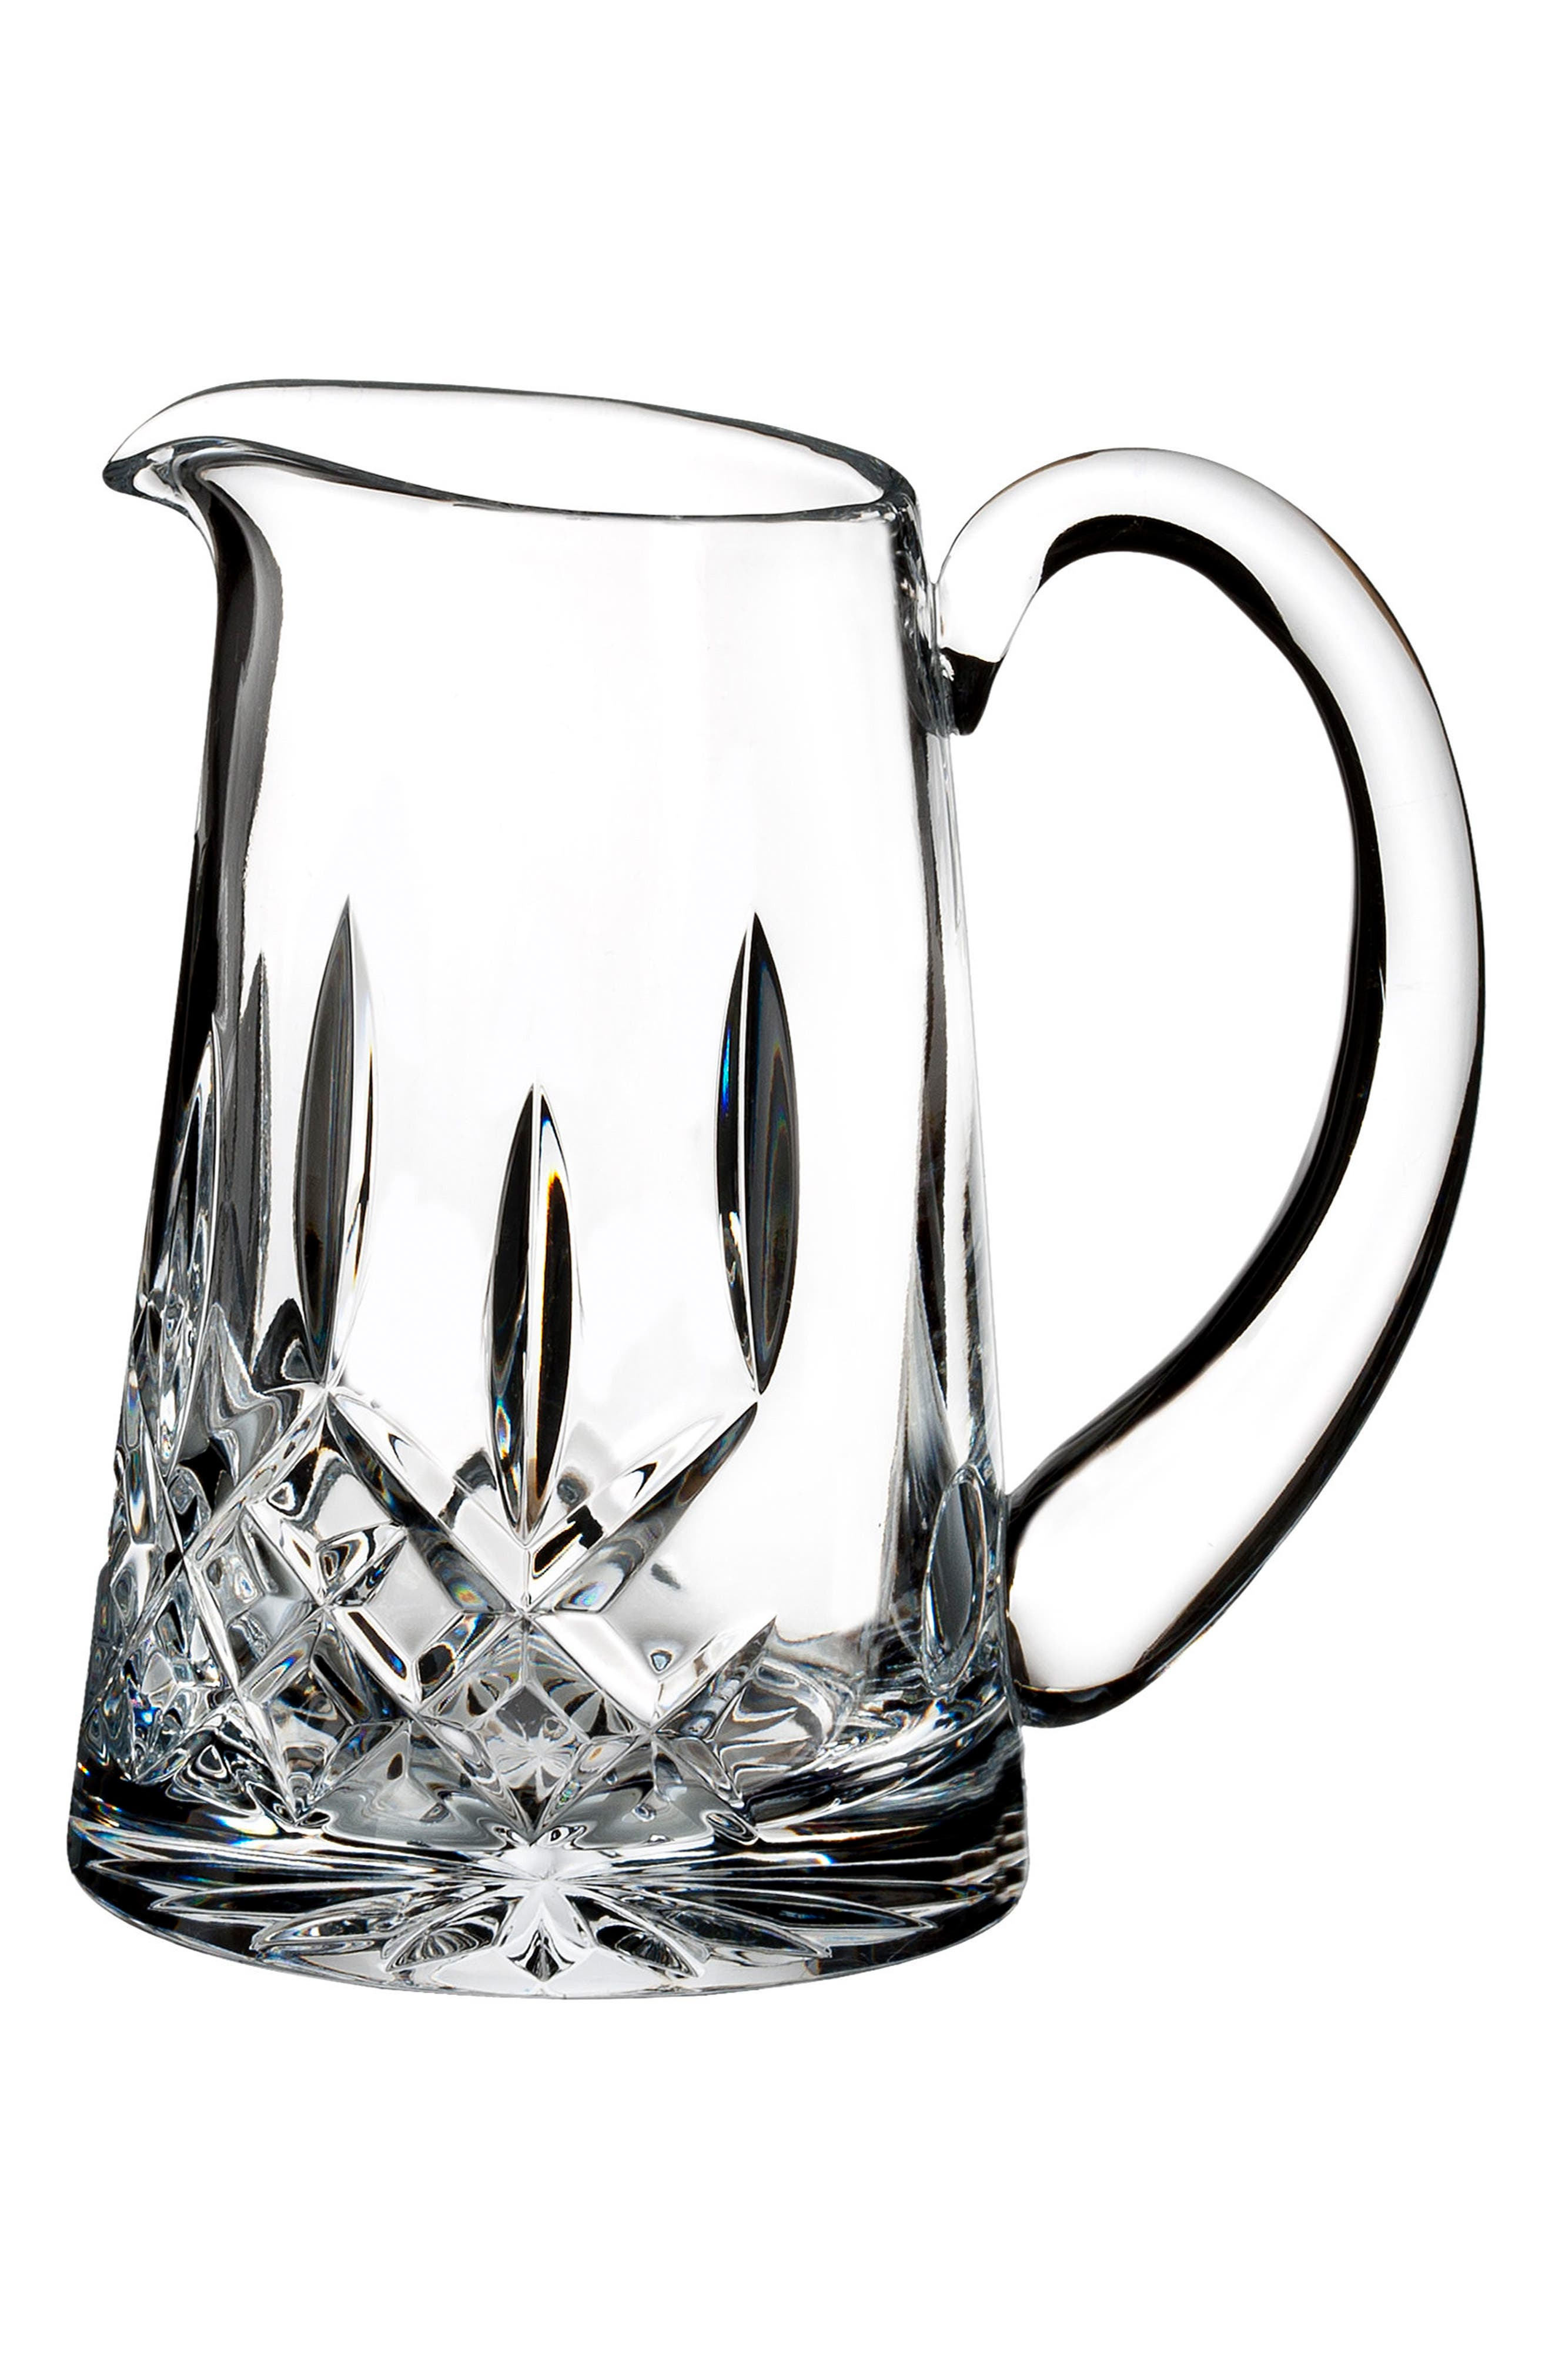 Main Image - Waterford Lismore Lead Crystal Pitcher